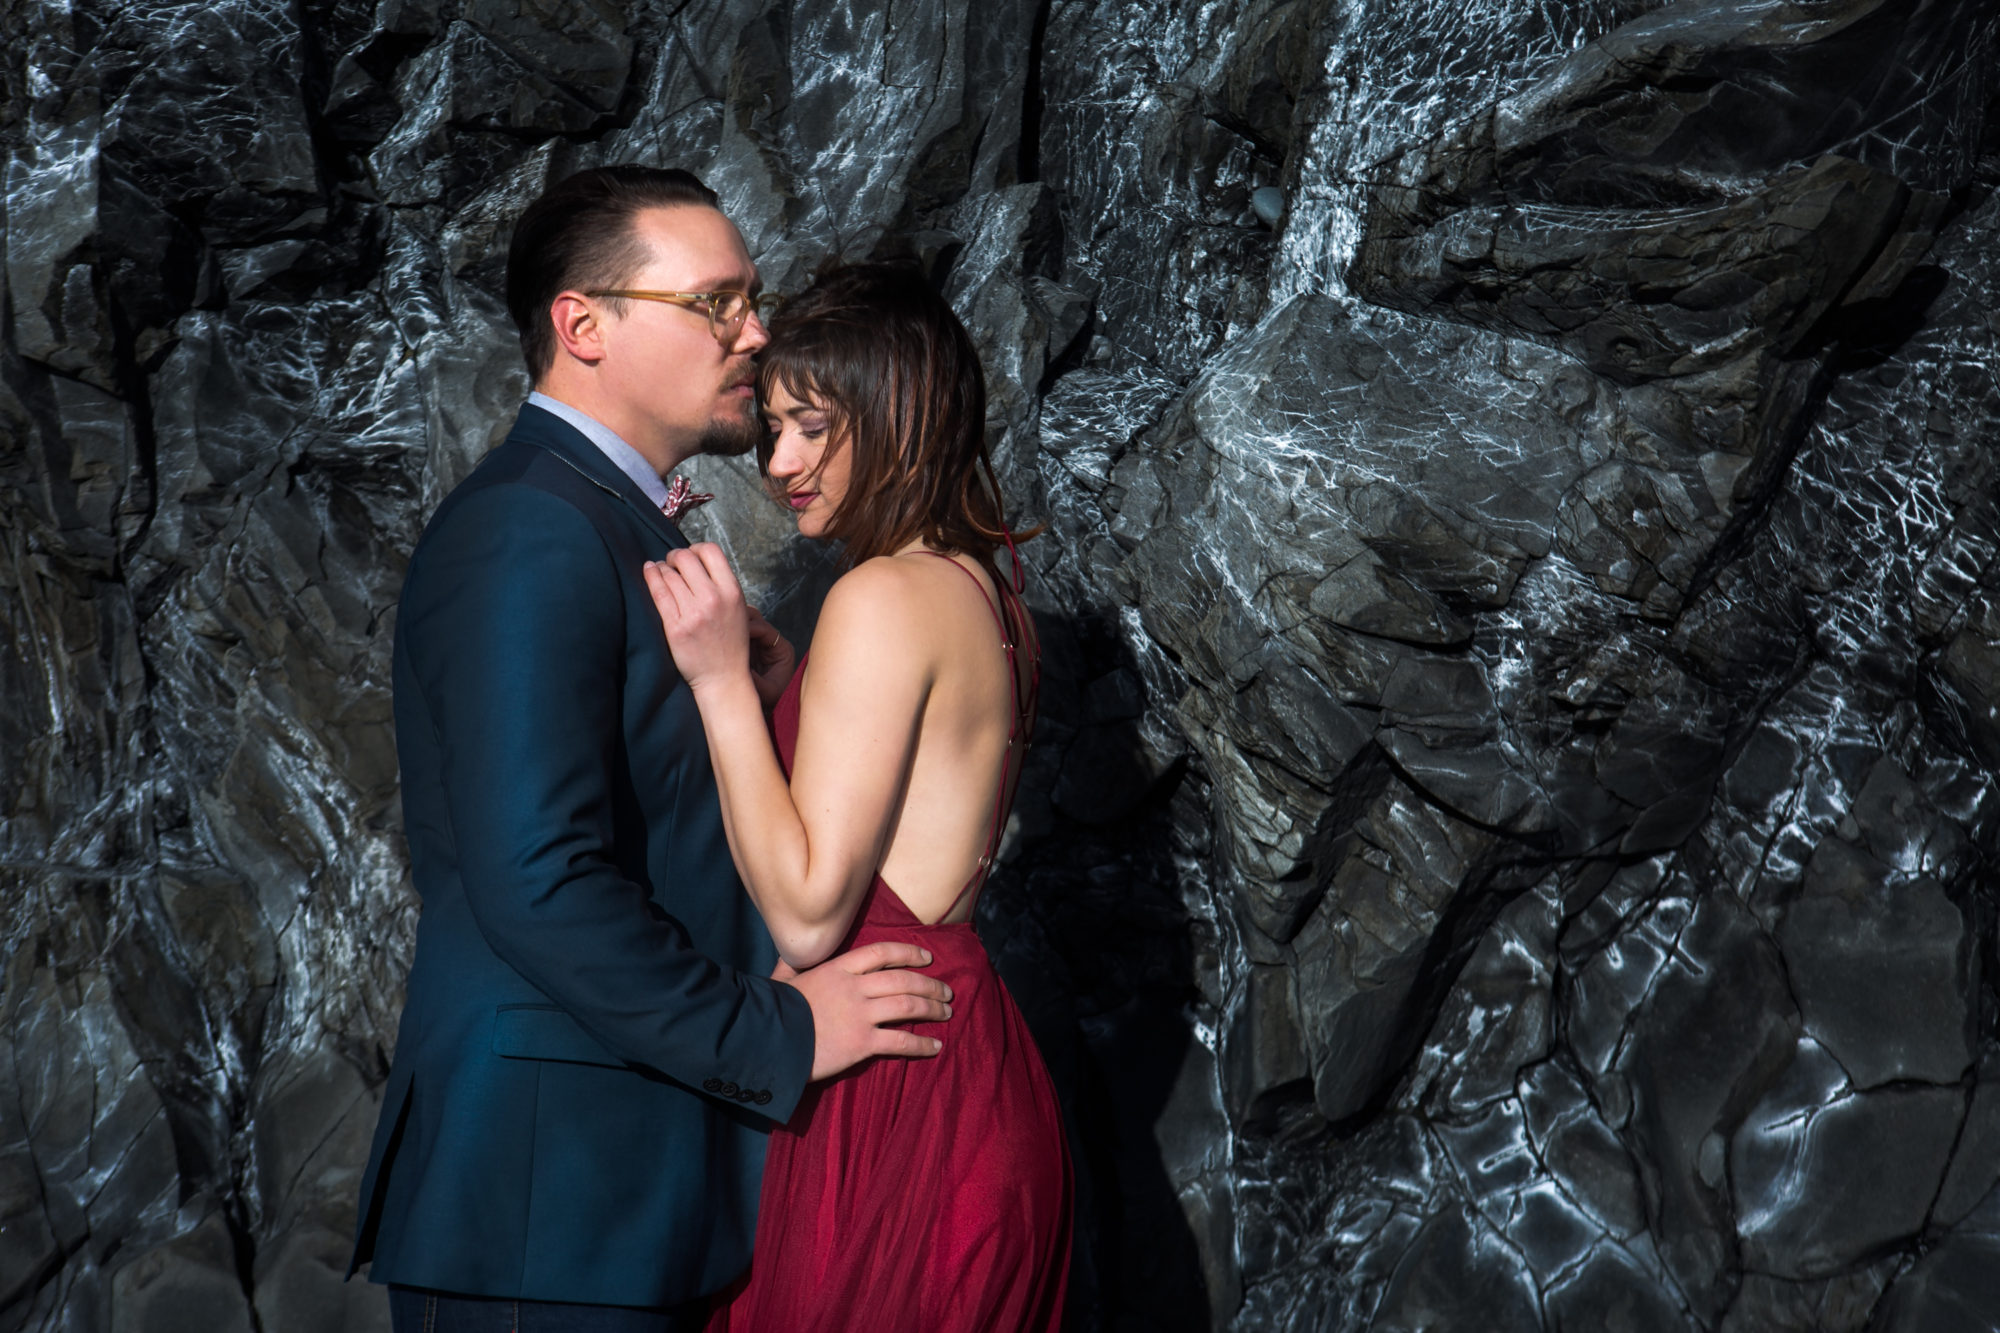 Couple Cliff Engagement Blue Rocks Reynesfjara Vik Iceland Black Sand Beach